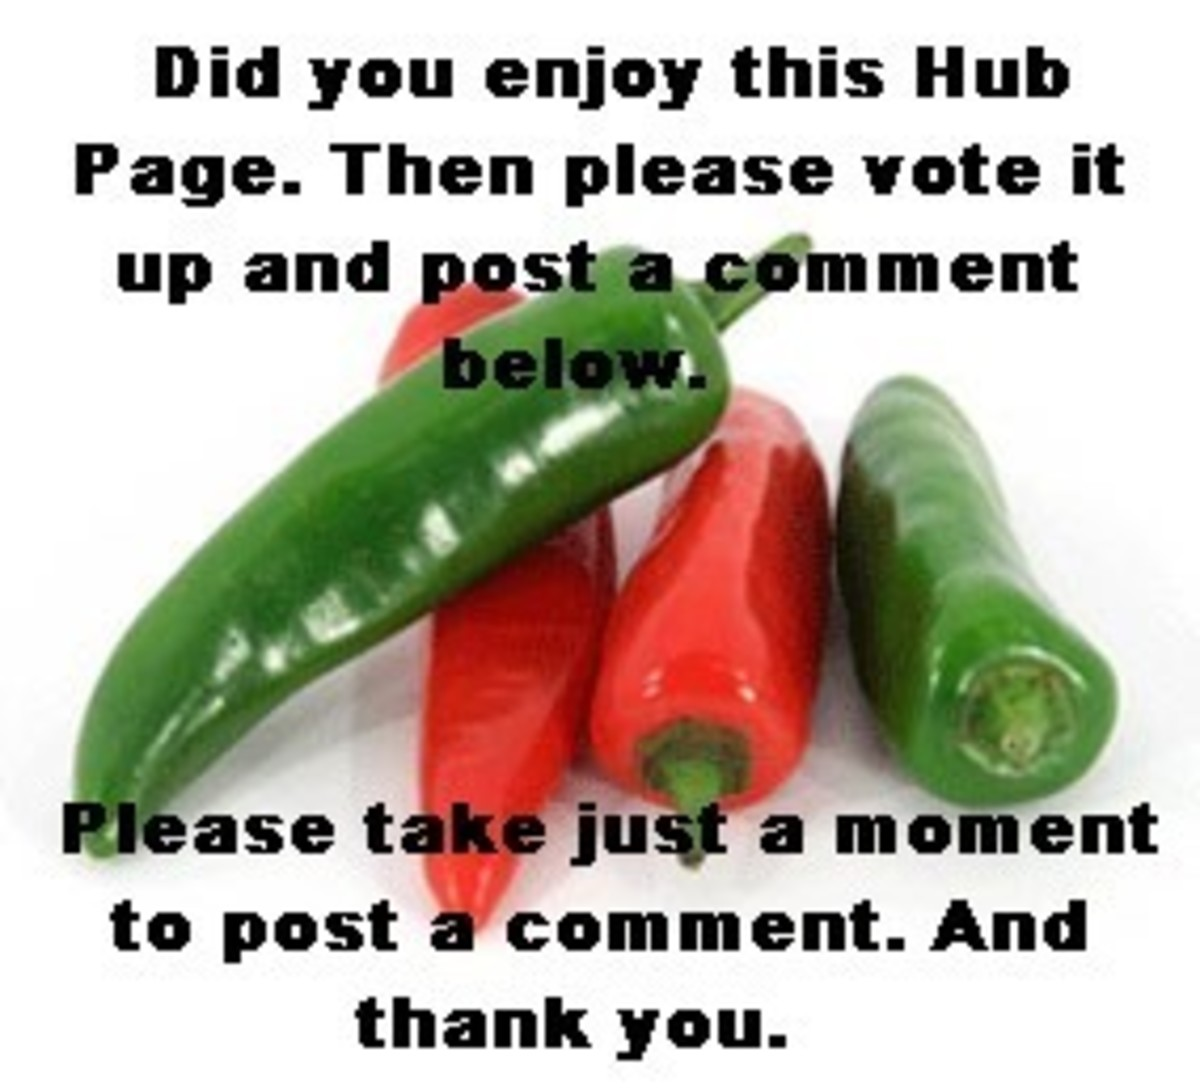 Please Vote This Hub Page Up If You Enjoyed It. And Also Please Post A Comment. Thanks In Advance.